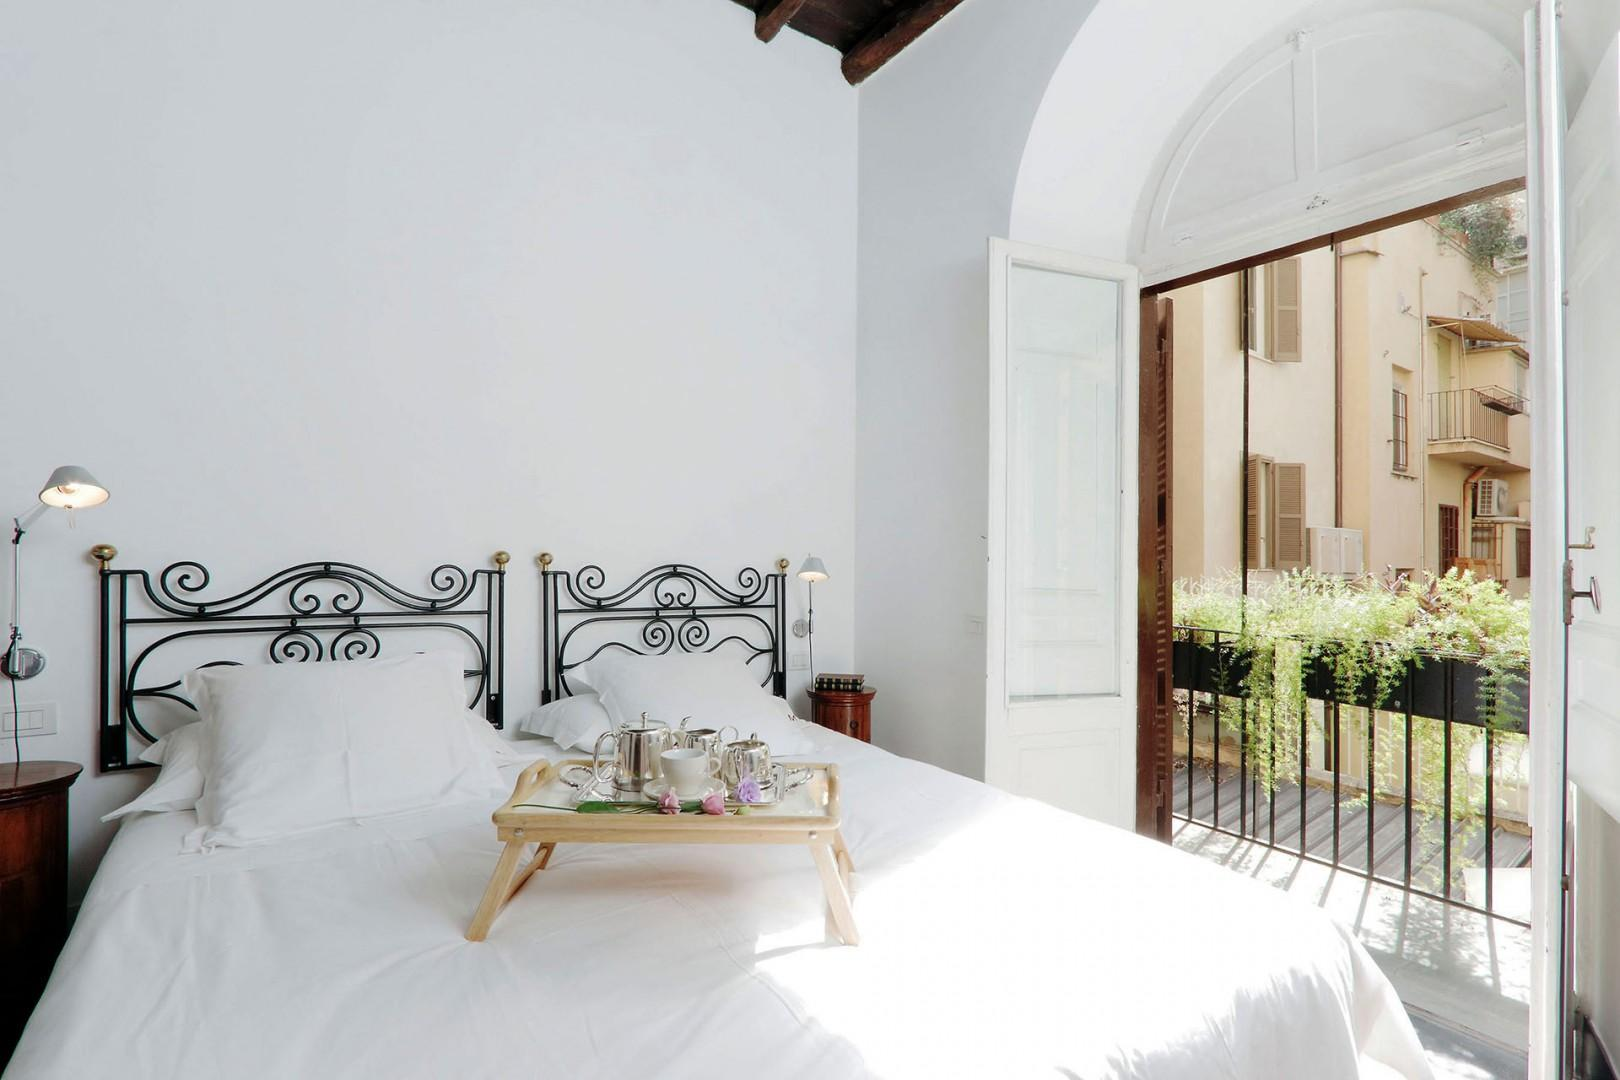 Lovely bedroom 3 with a private balcony.